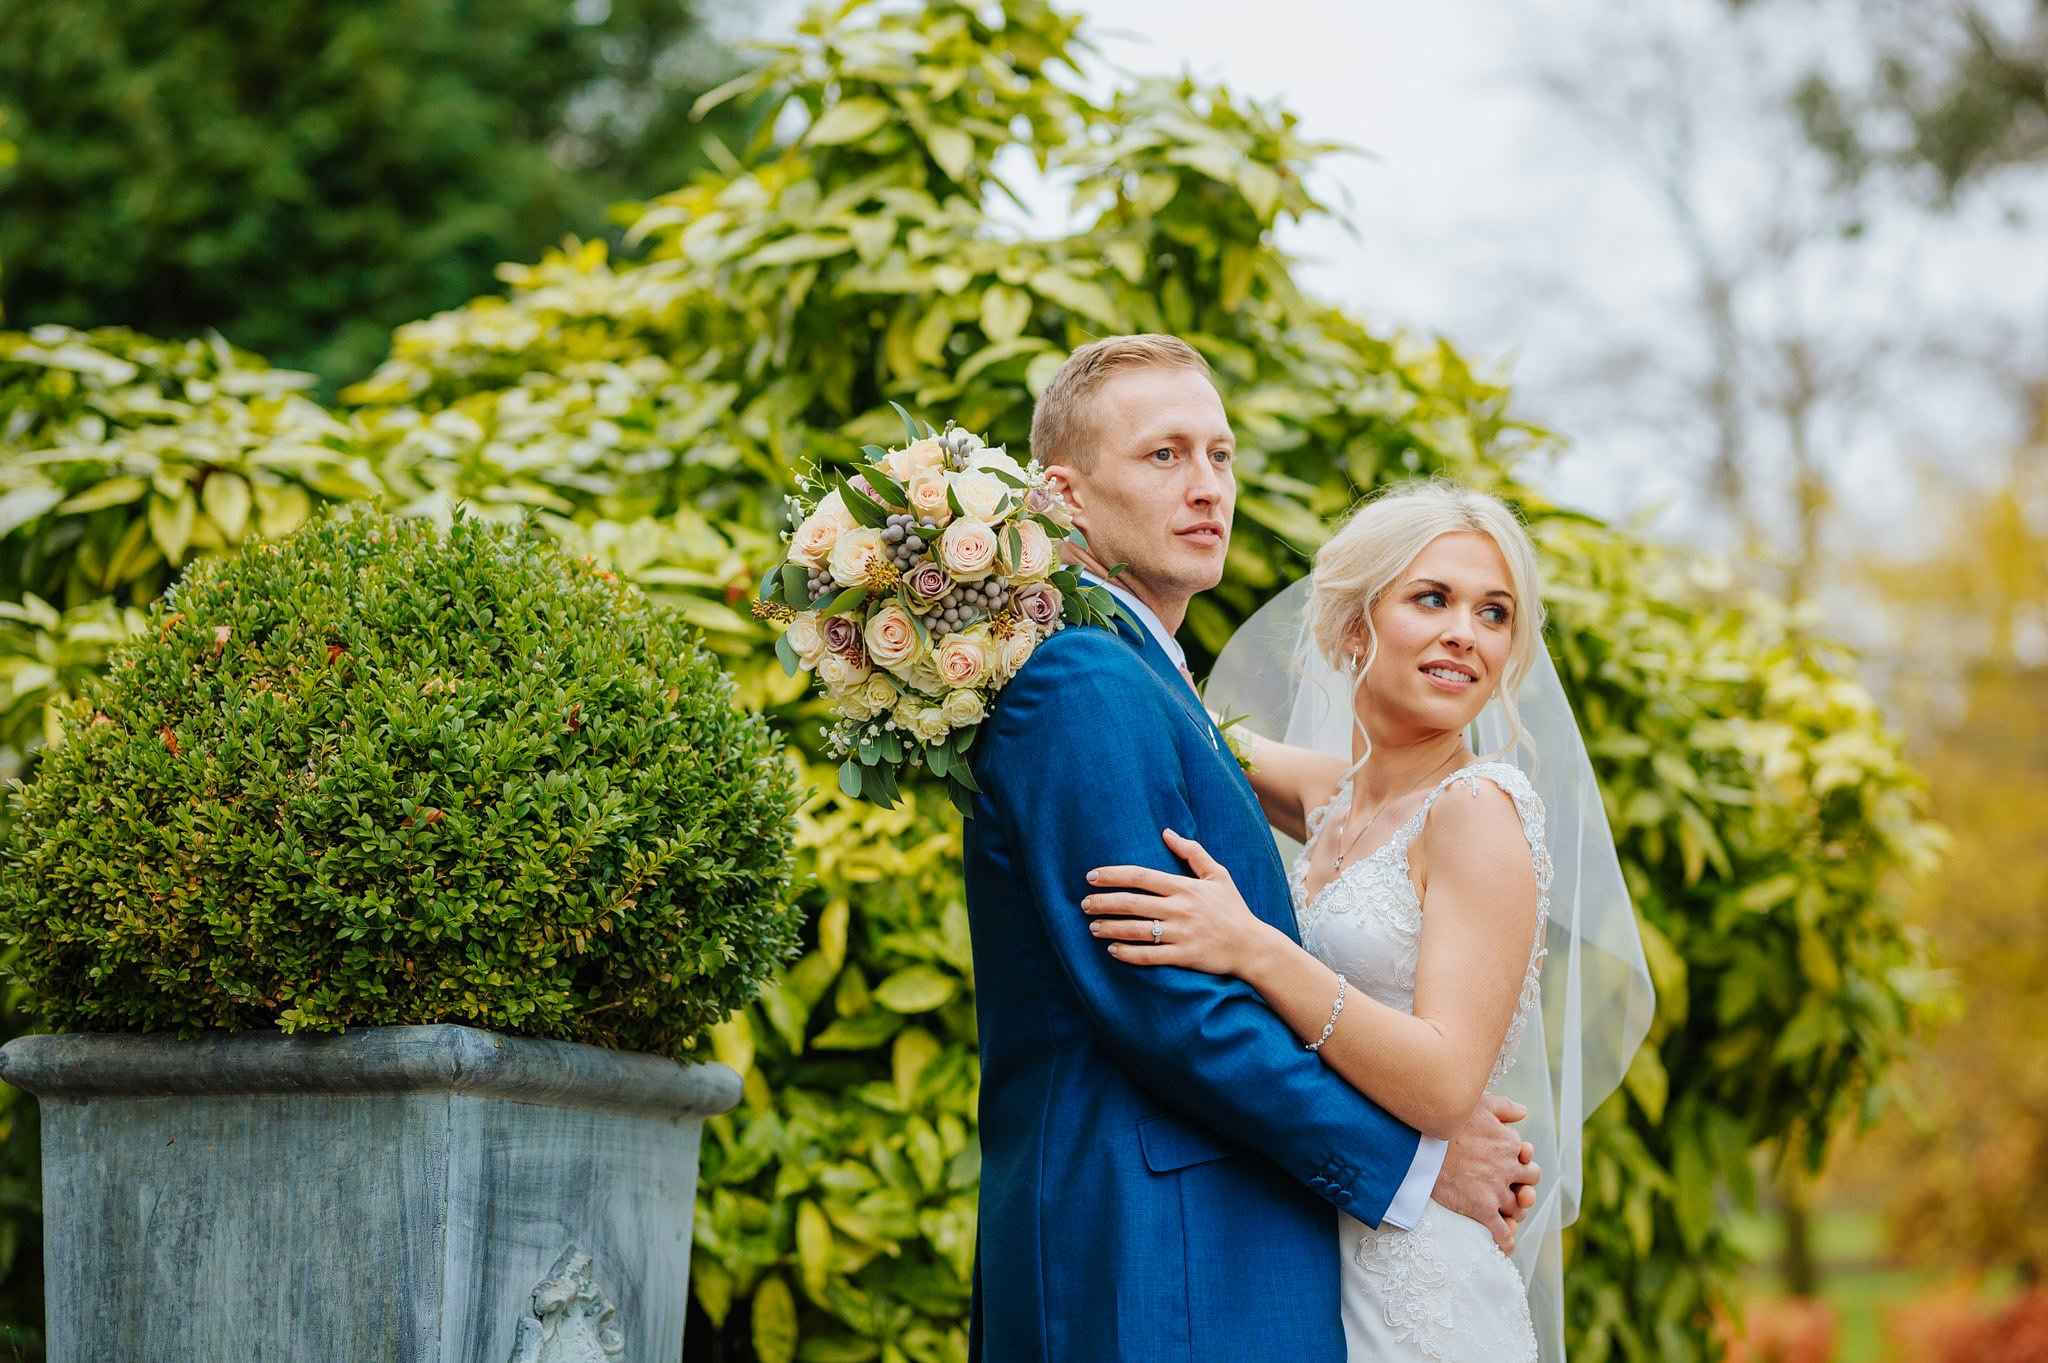 sigma 85mm art review wedding photography 117 - Sigma 85mm F1.4 ART review vs Wedding Photography